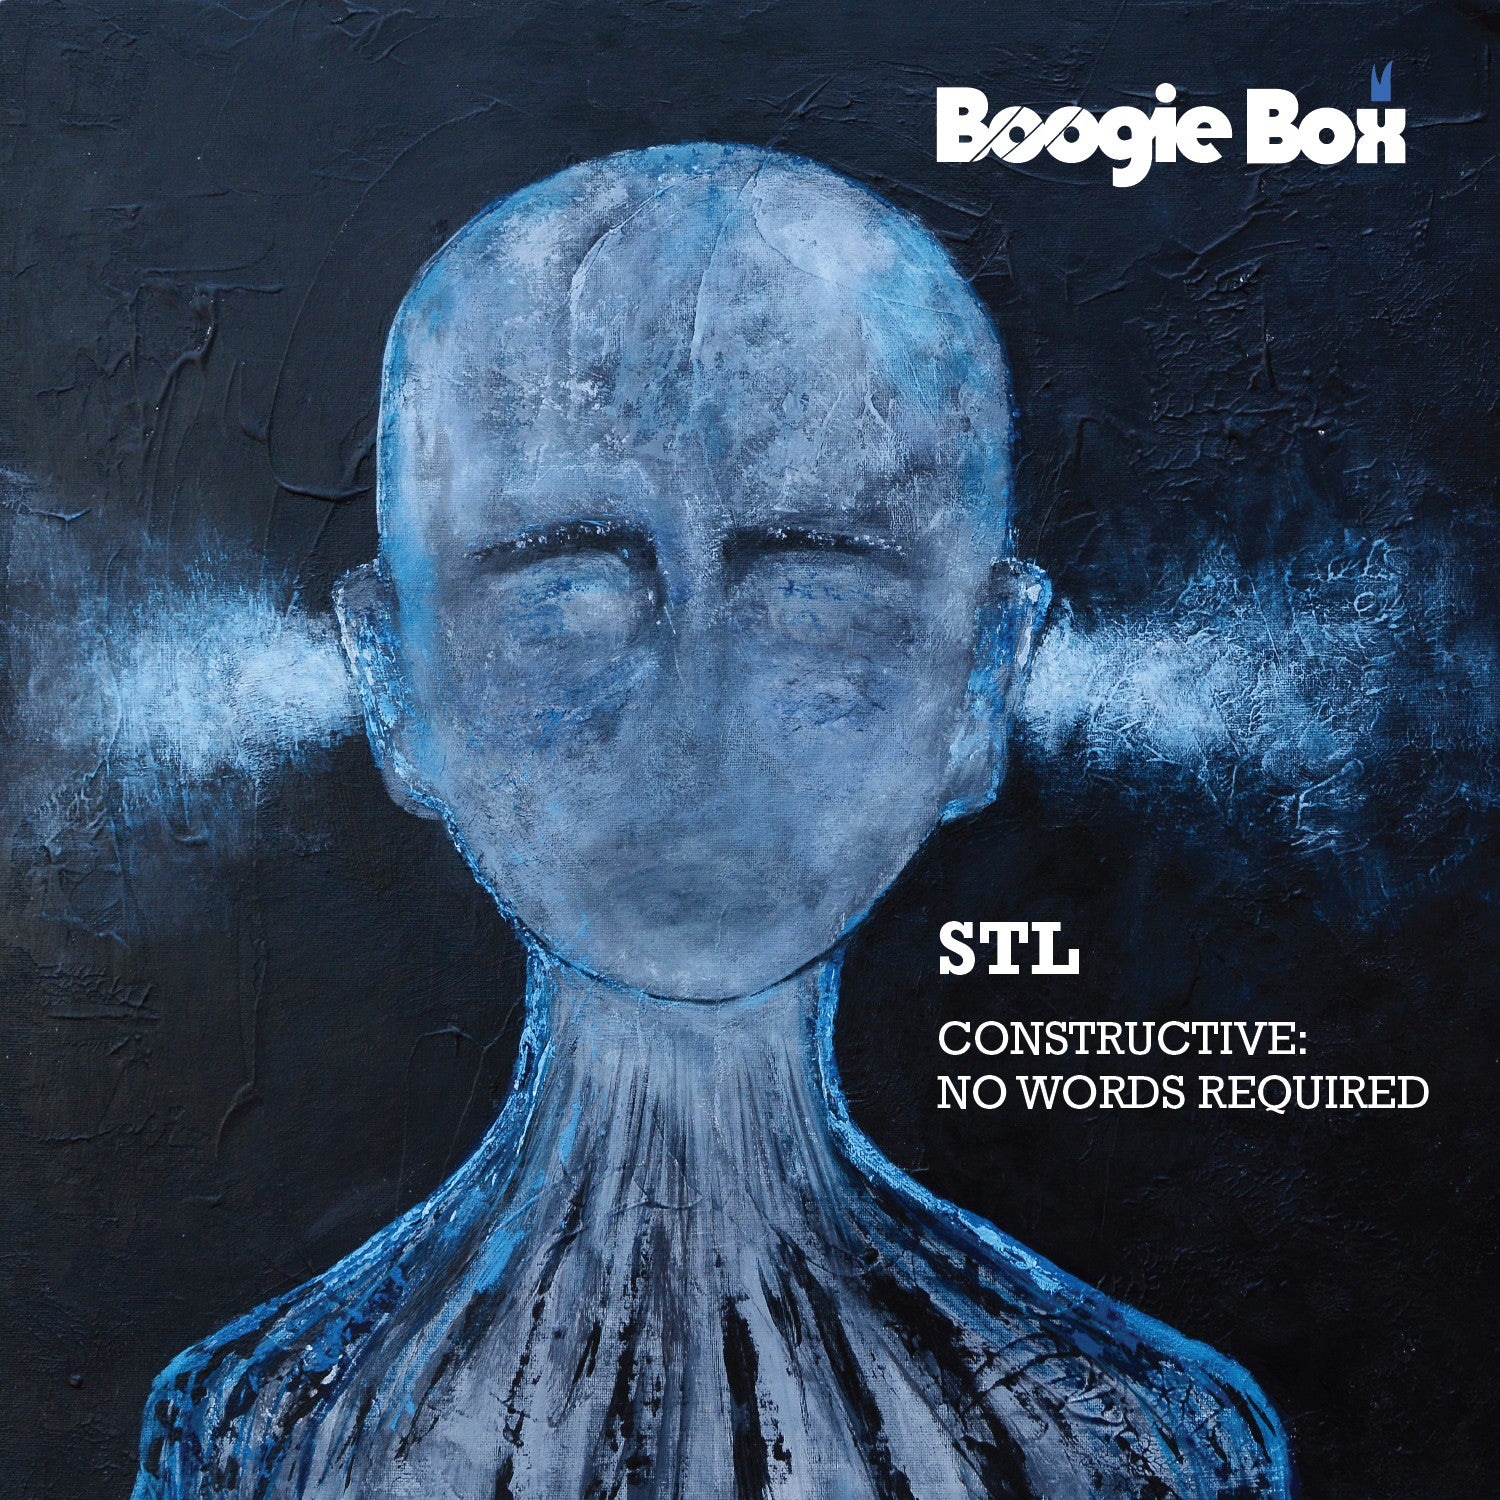 STL - Constructive: No Words Required , Vinyl - Boogie Box, Unearthed Sounds